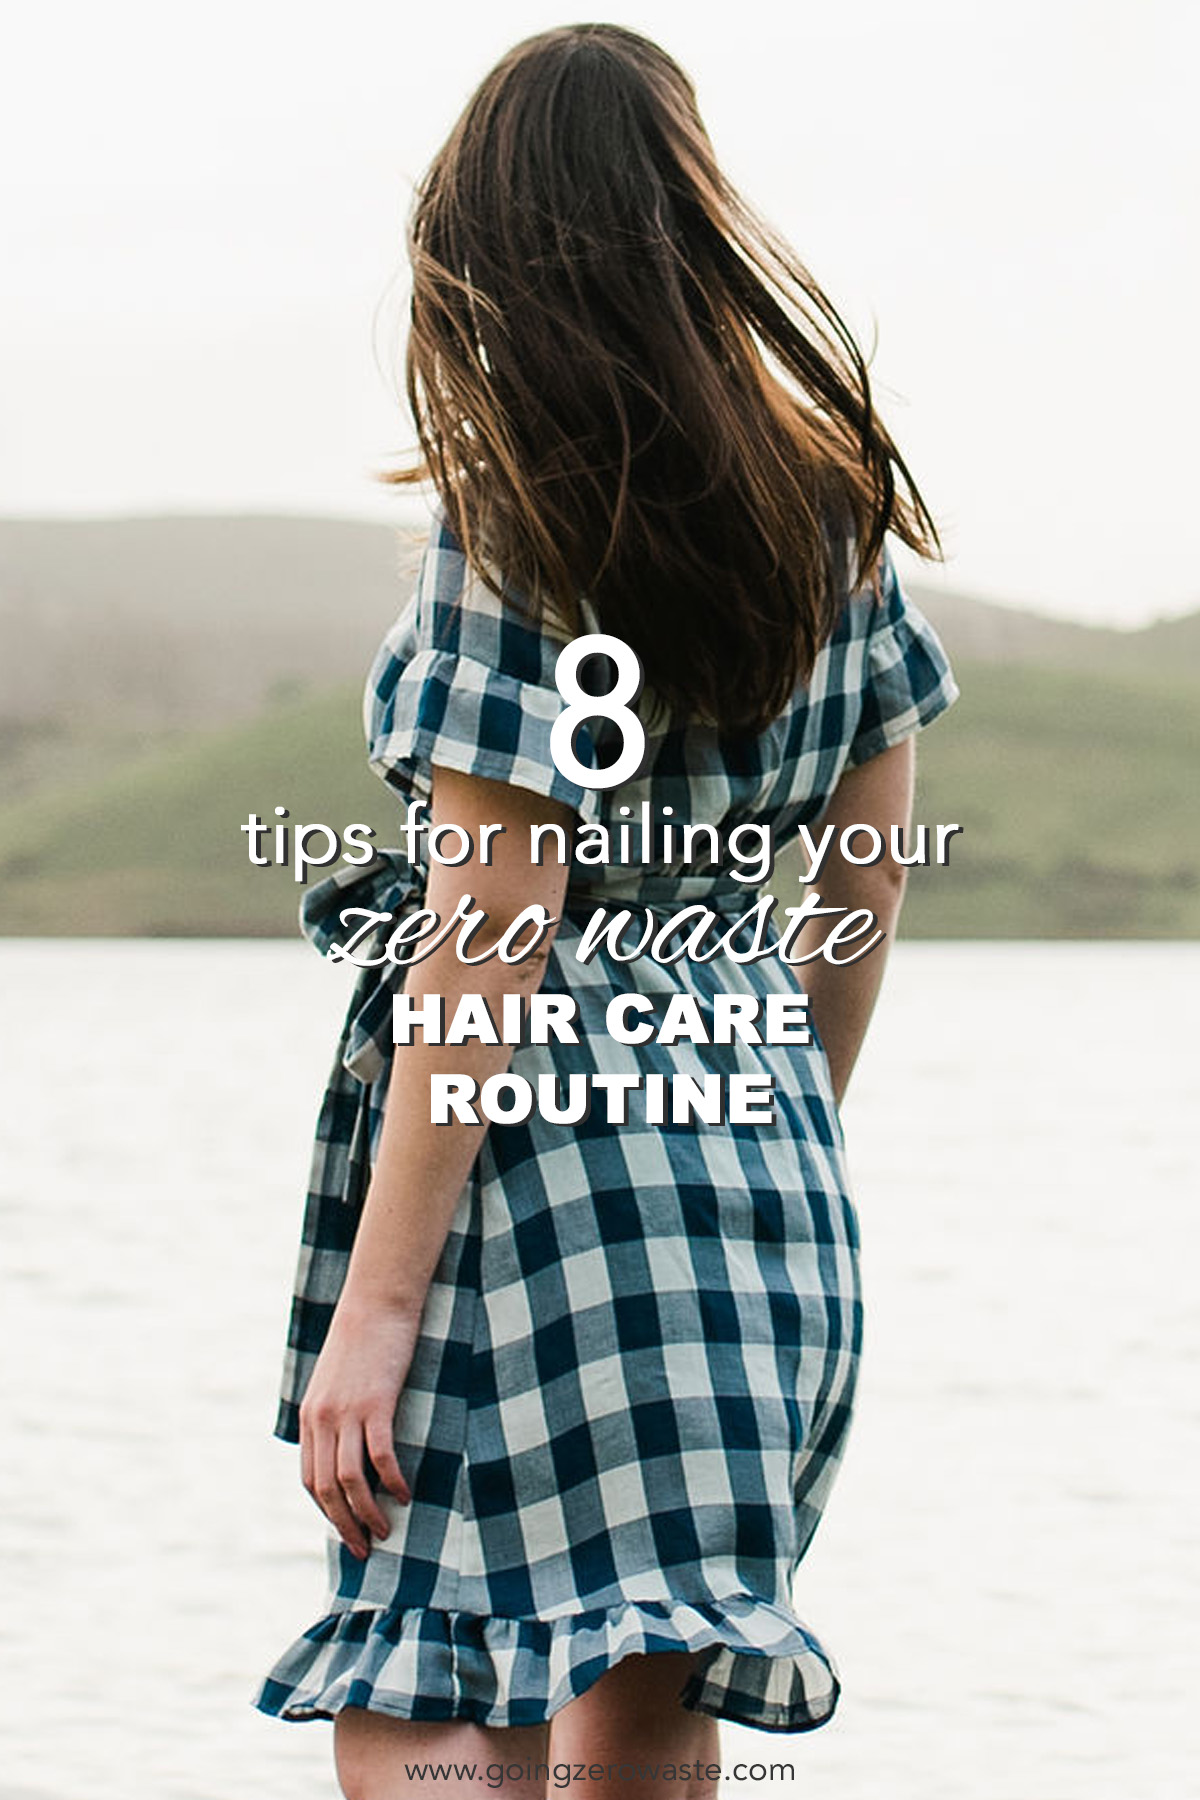 8 tips for nailing your zero waste hair care routine from www.goingzerowaste.com #ecofriendly #haircare #zerowaste